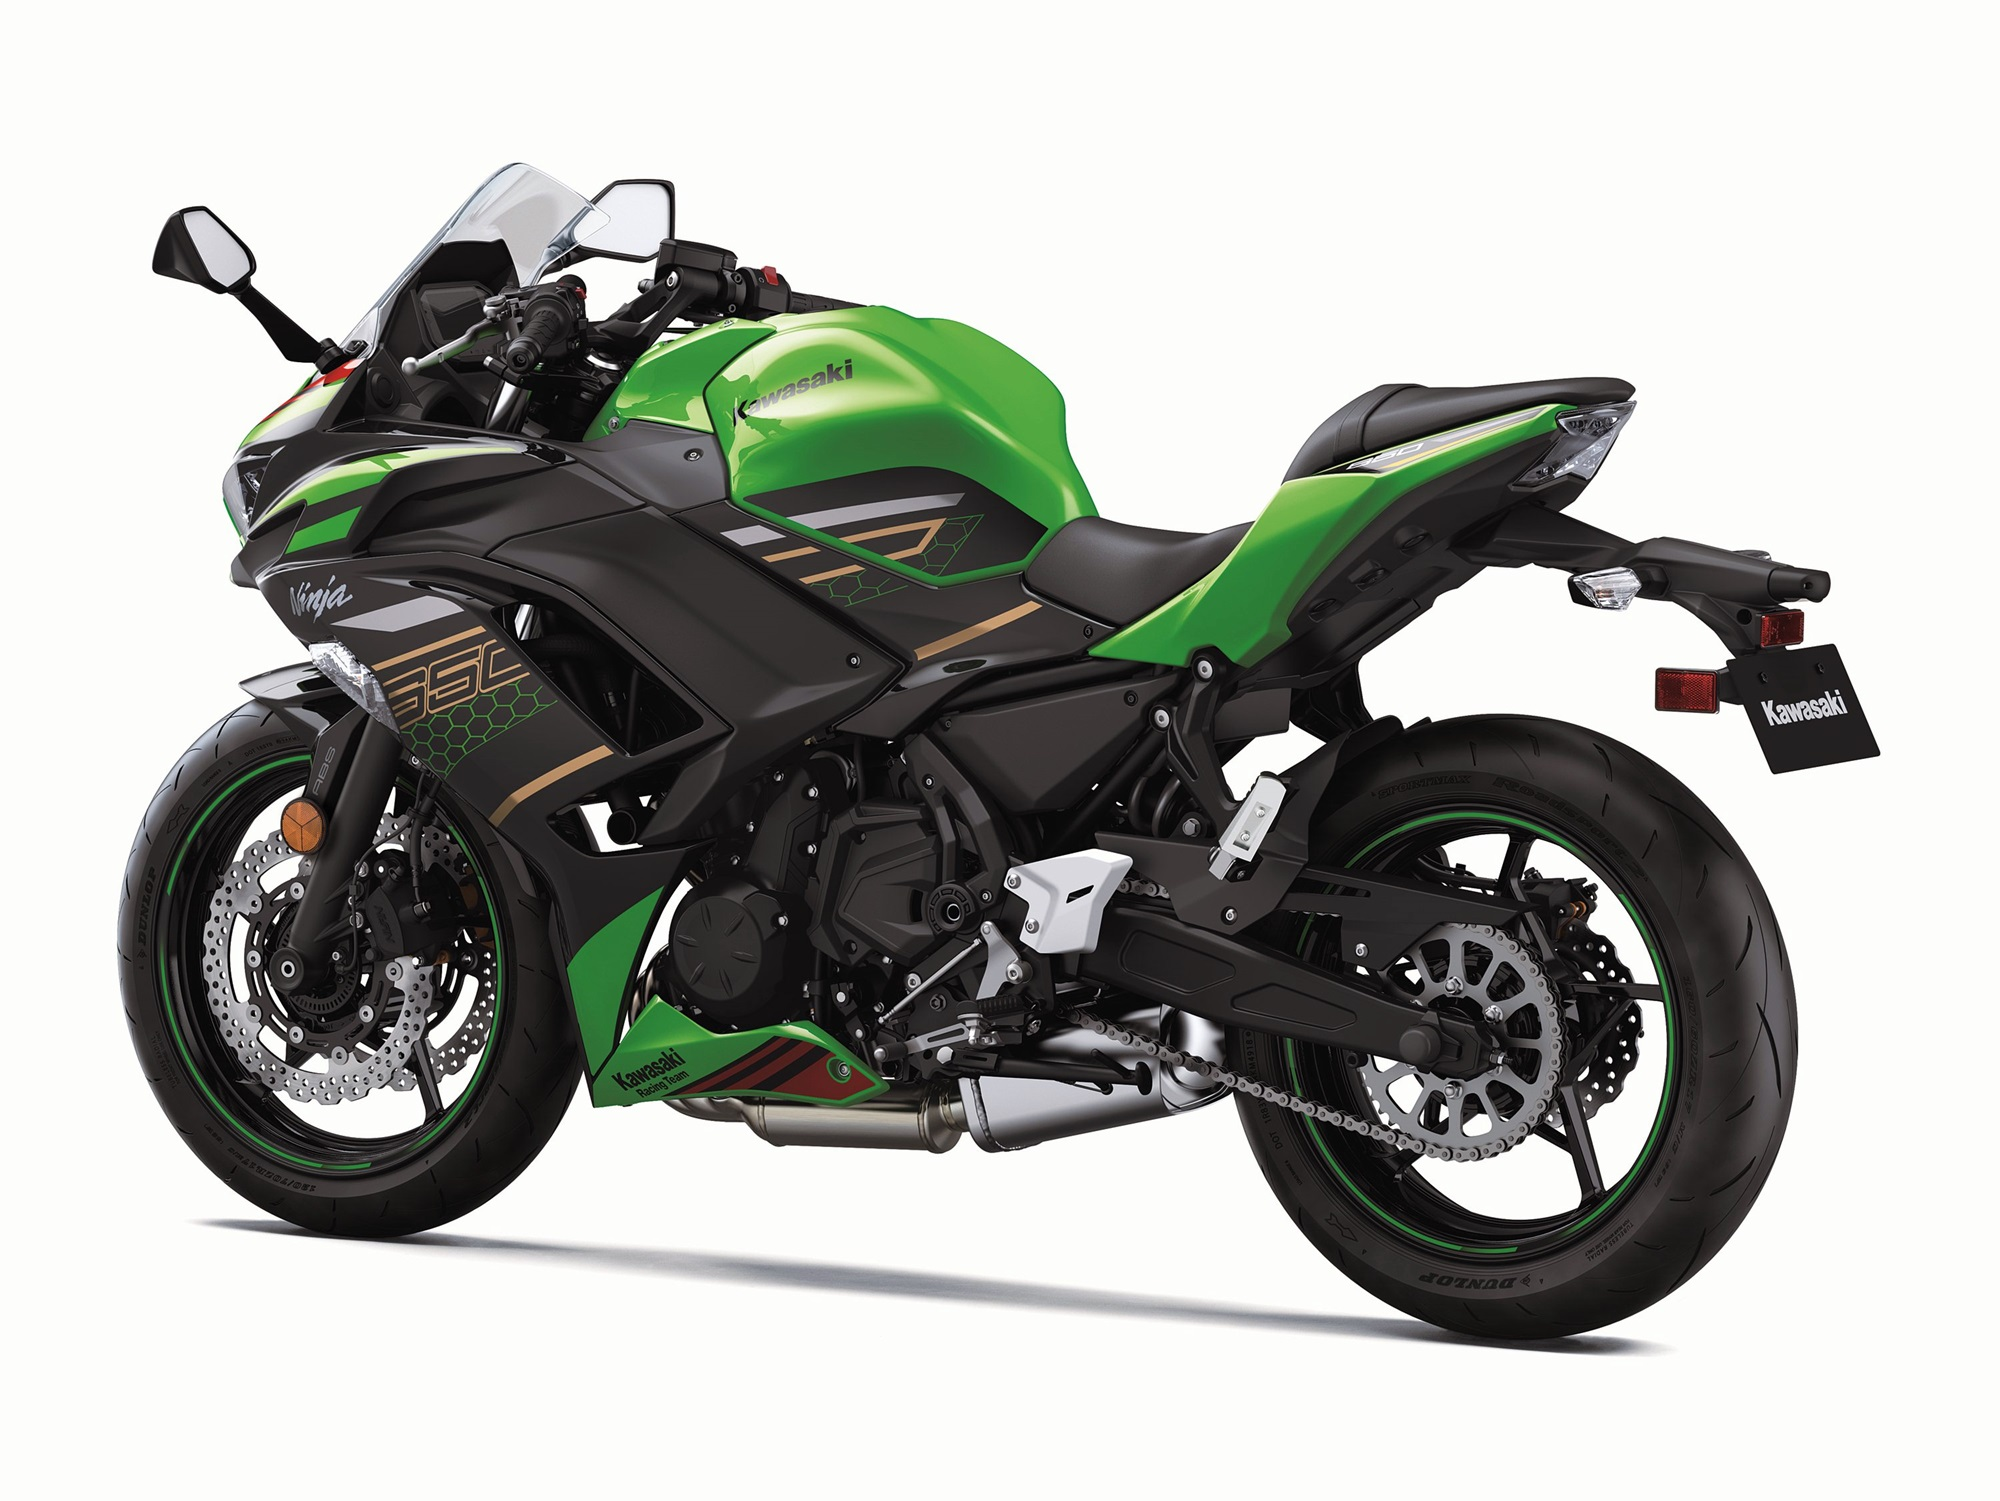 2020 Kawasaki Ninja 650 HD black colour option